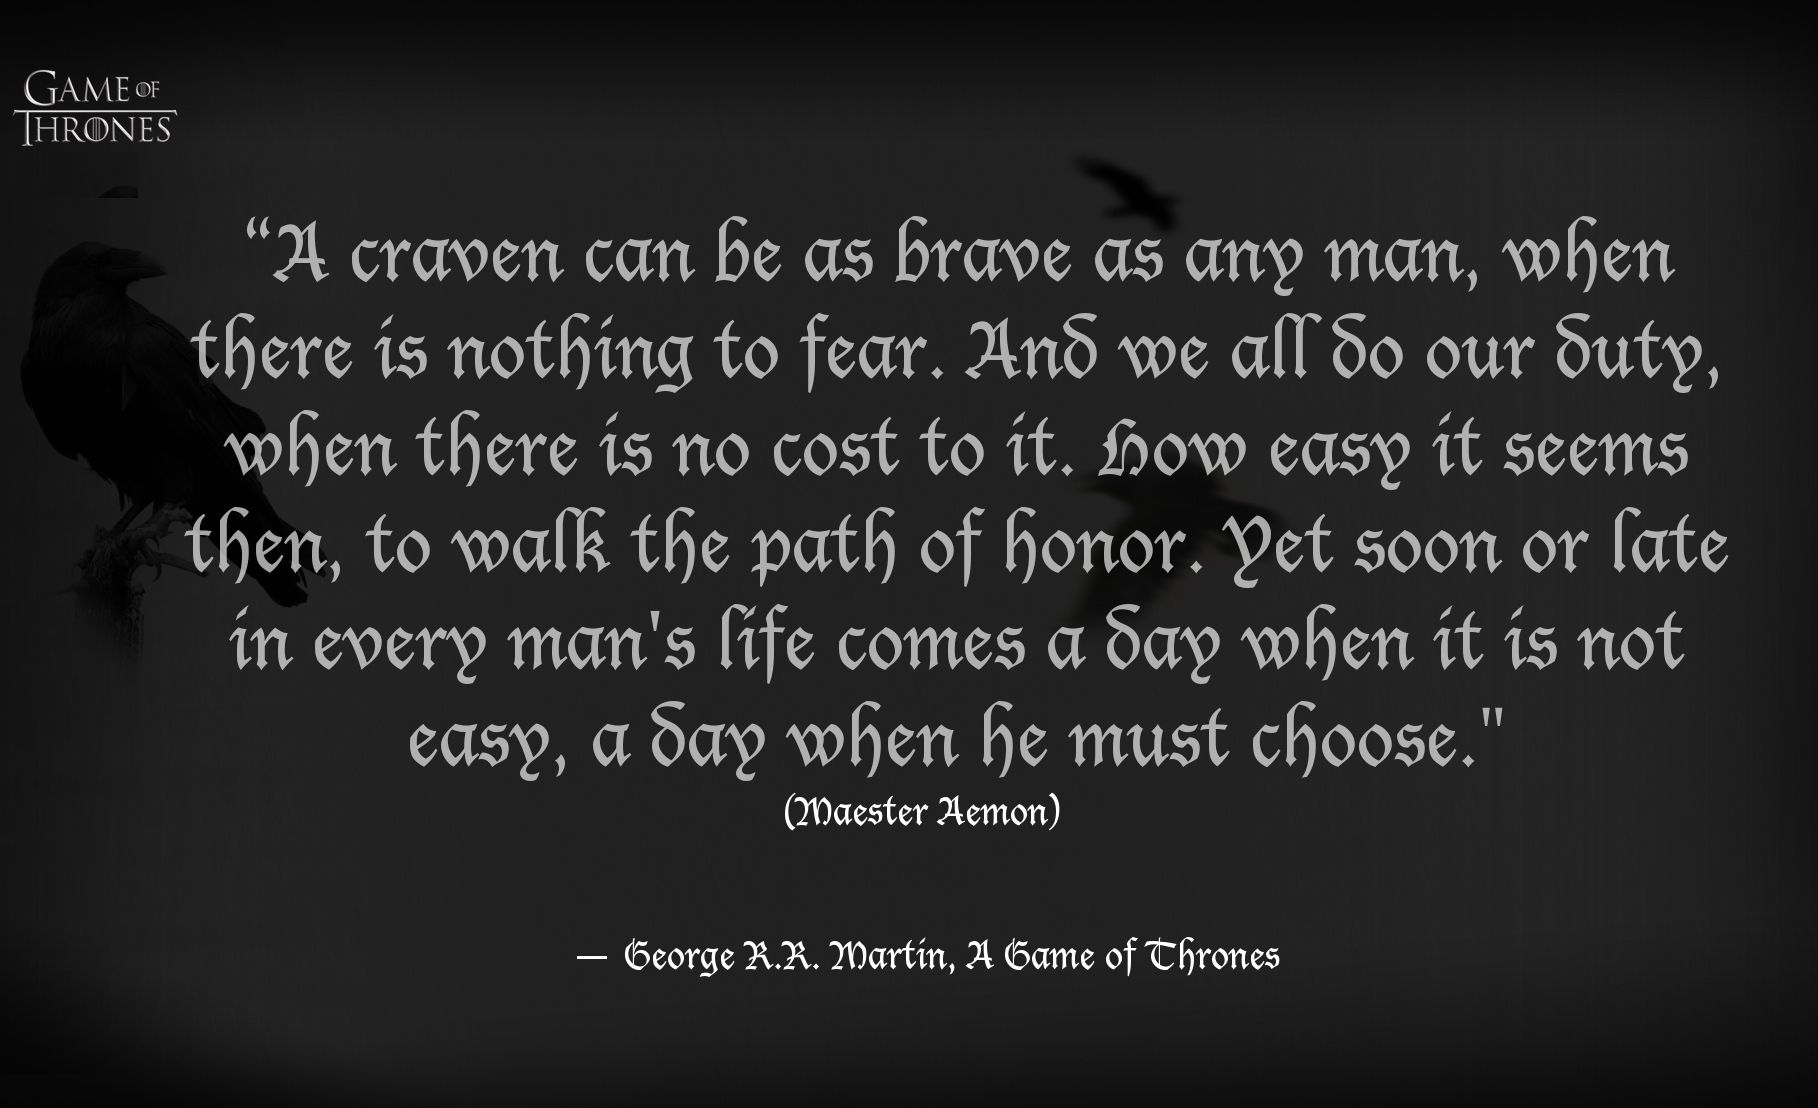 Game of Thrones quote (I don't watch the show, but this is a great quote.)